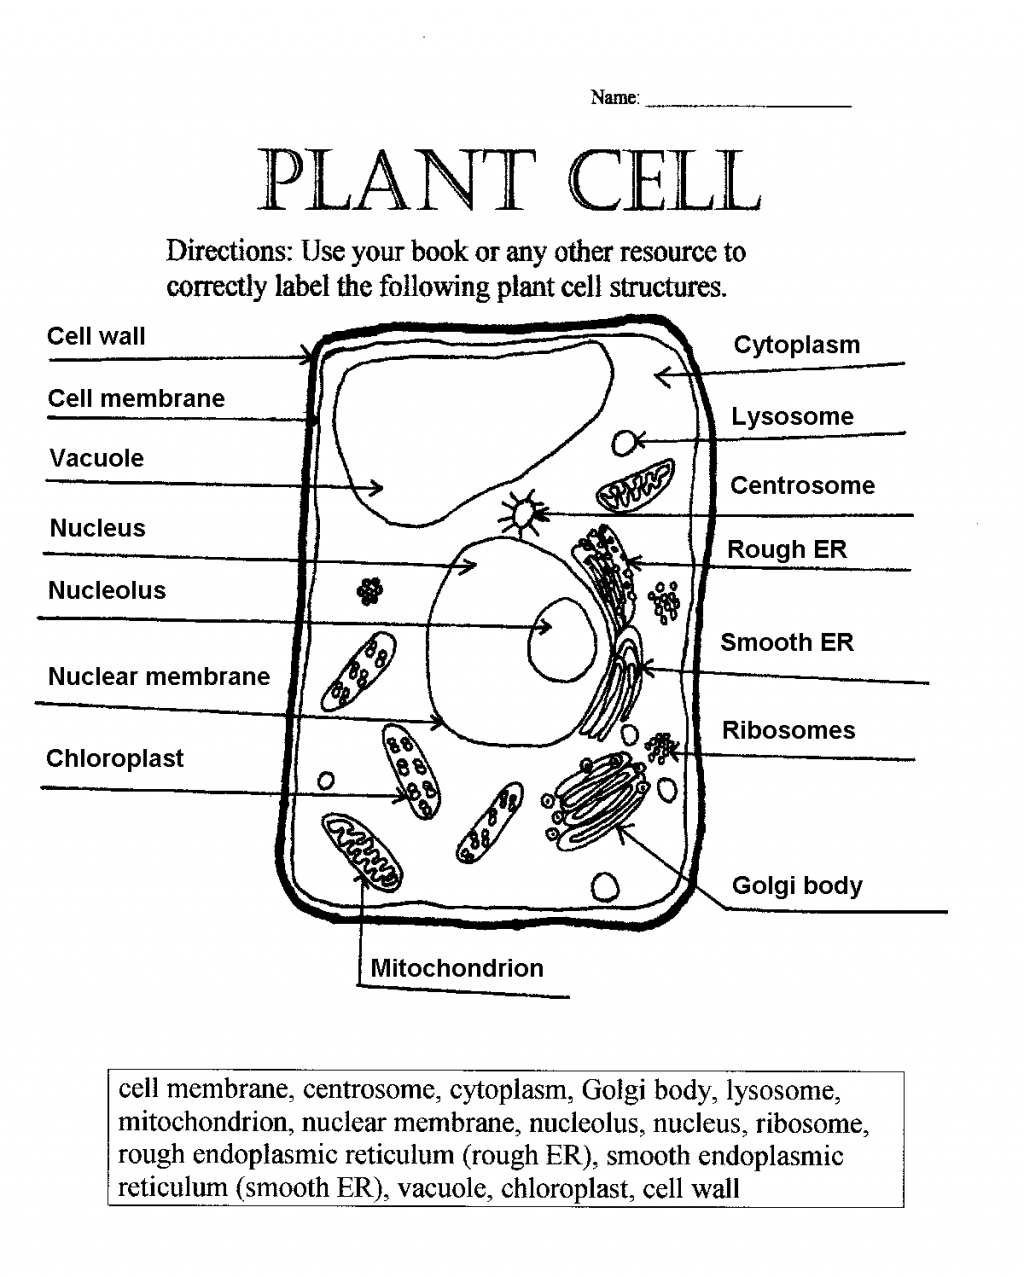 "Printable Animal Cell Diagram ??"" Labeled, Unlabeled, and Blank"